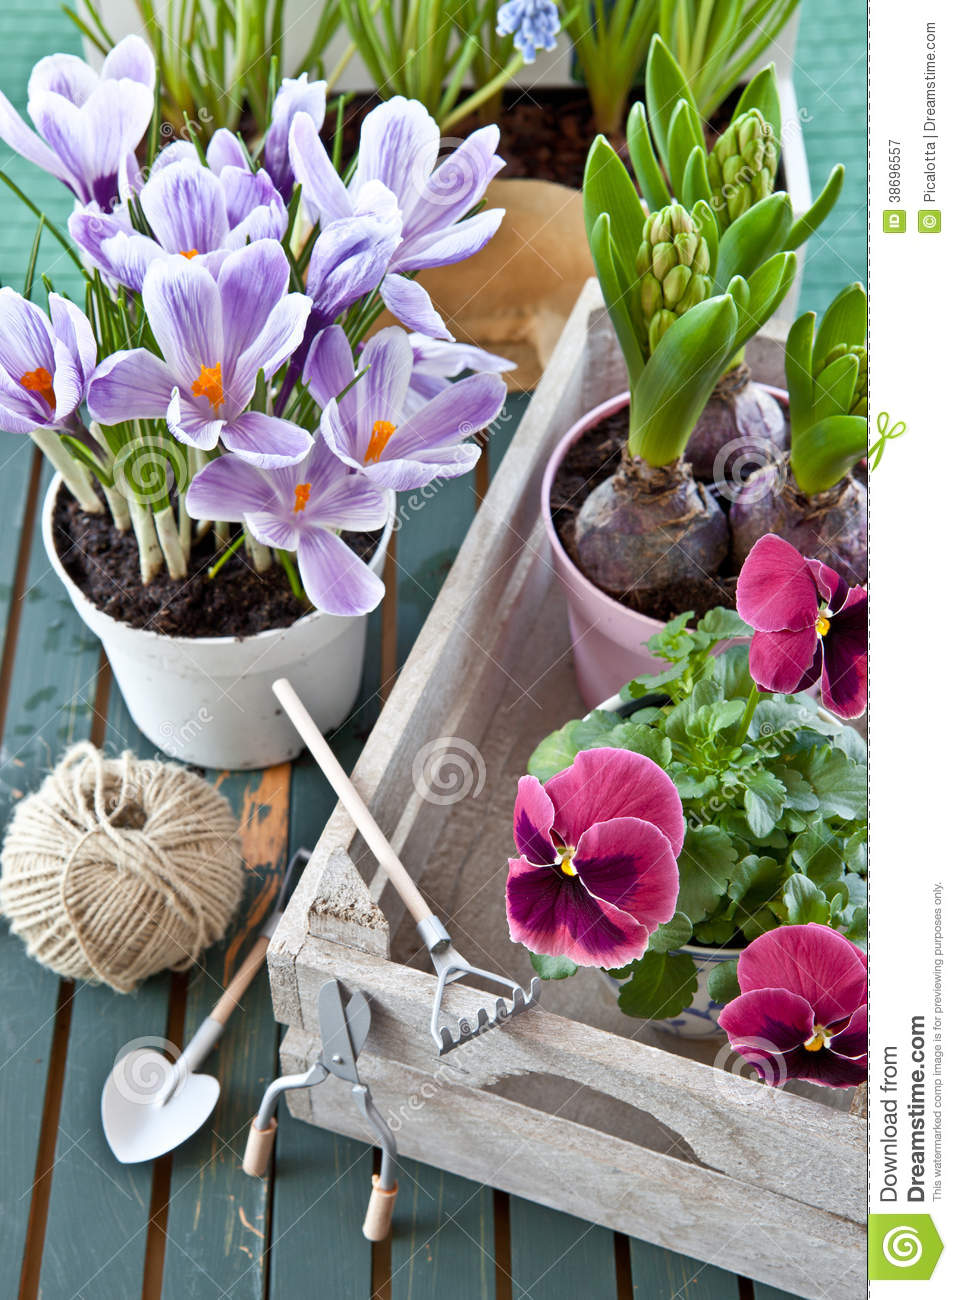 Various potted spring flowers stock image image of purple various potted spring flowers mightylinksfo